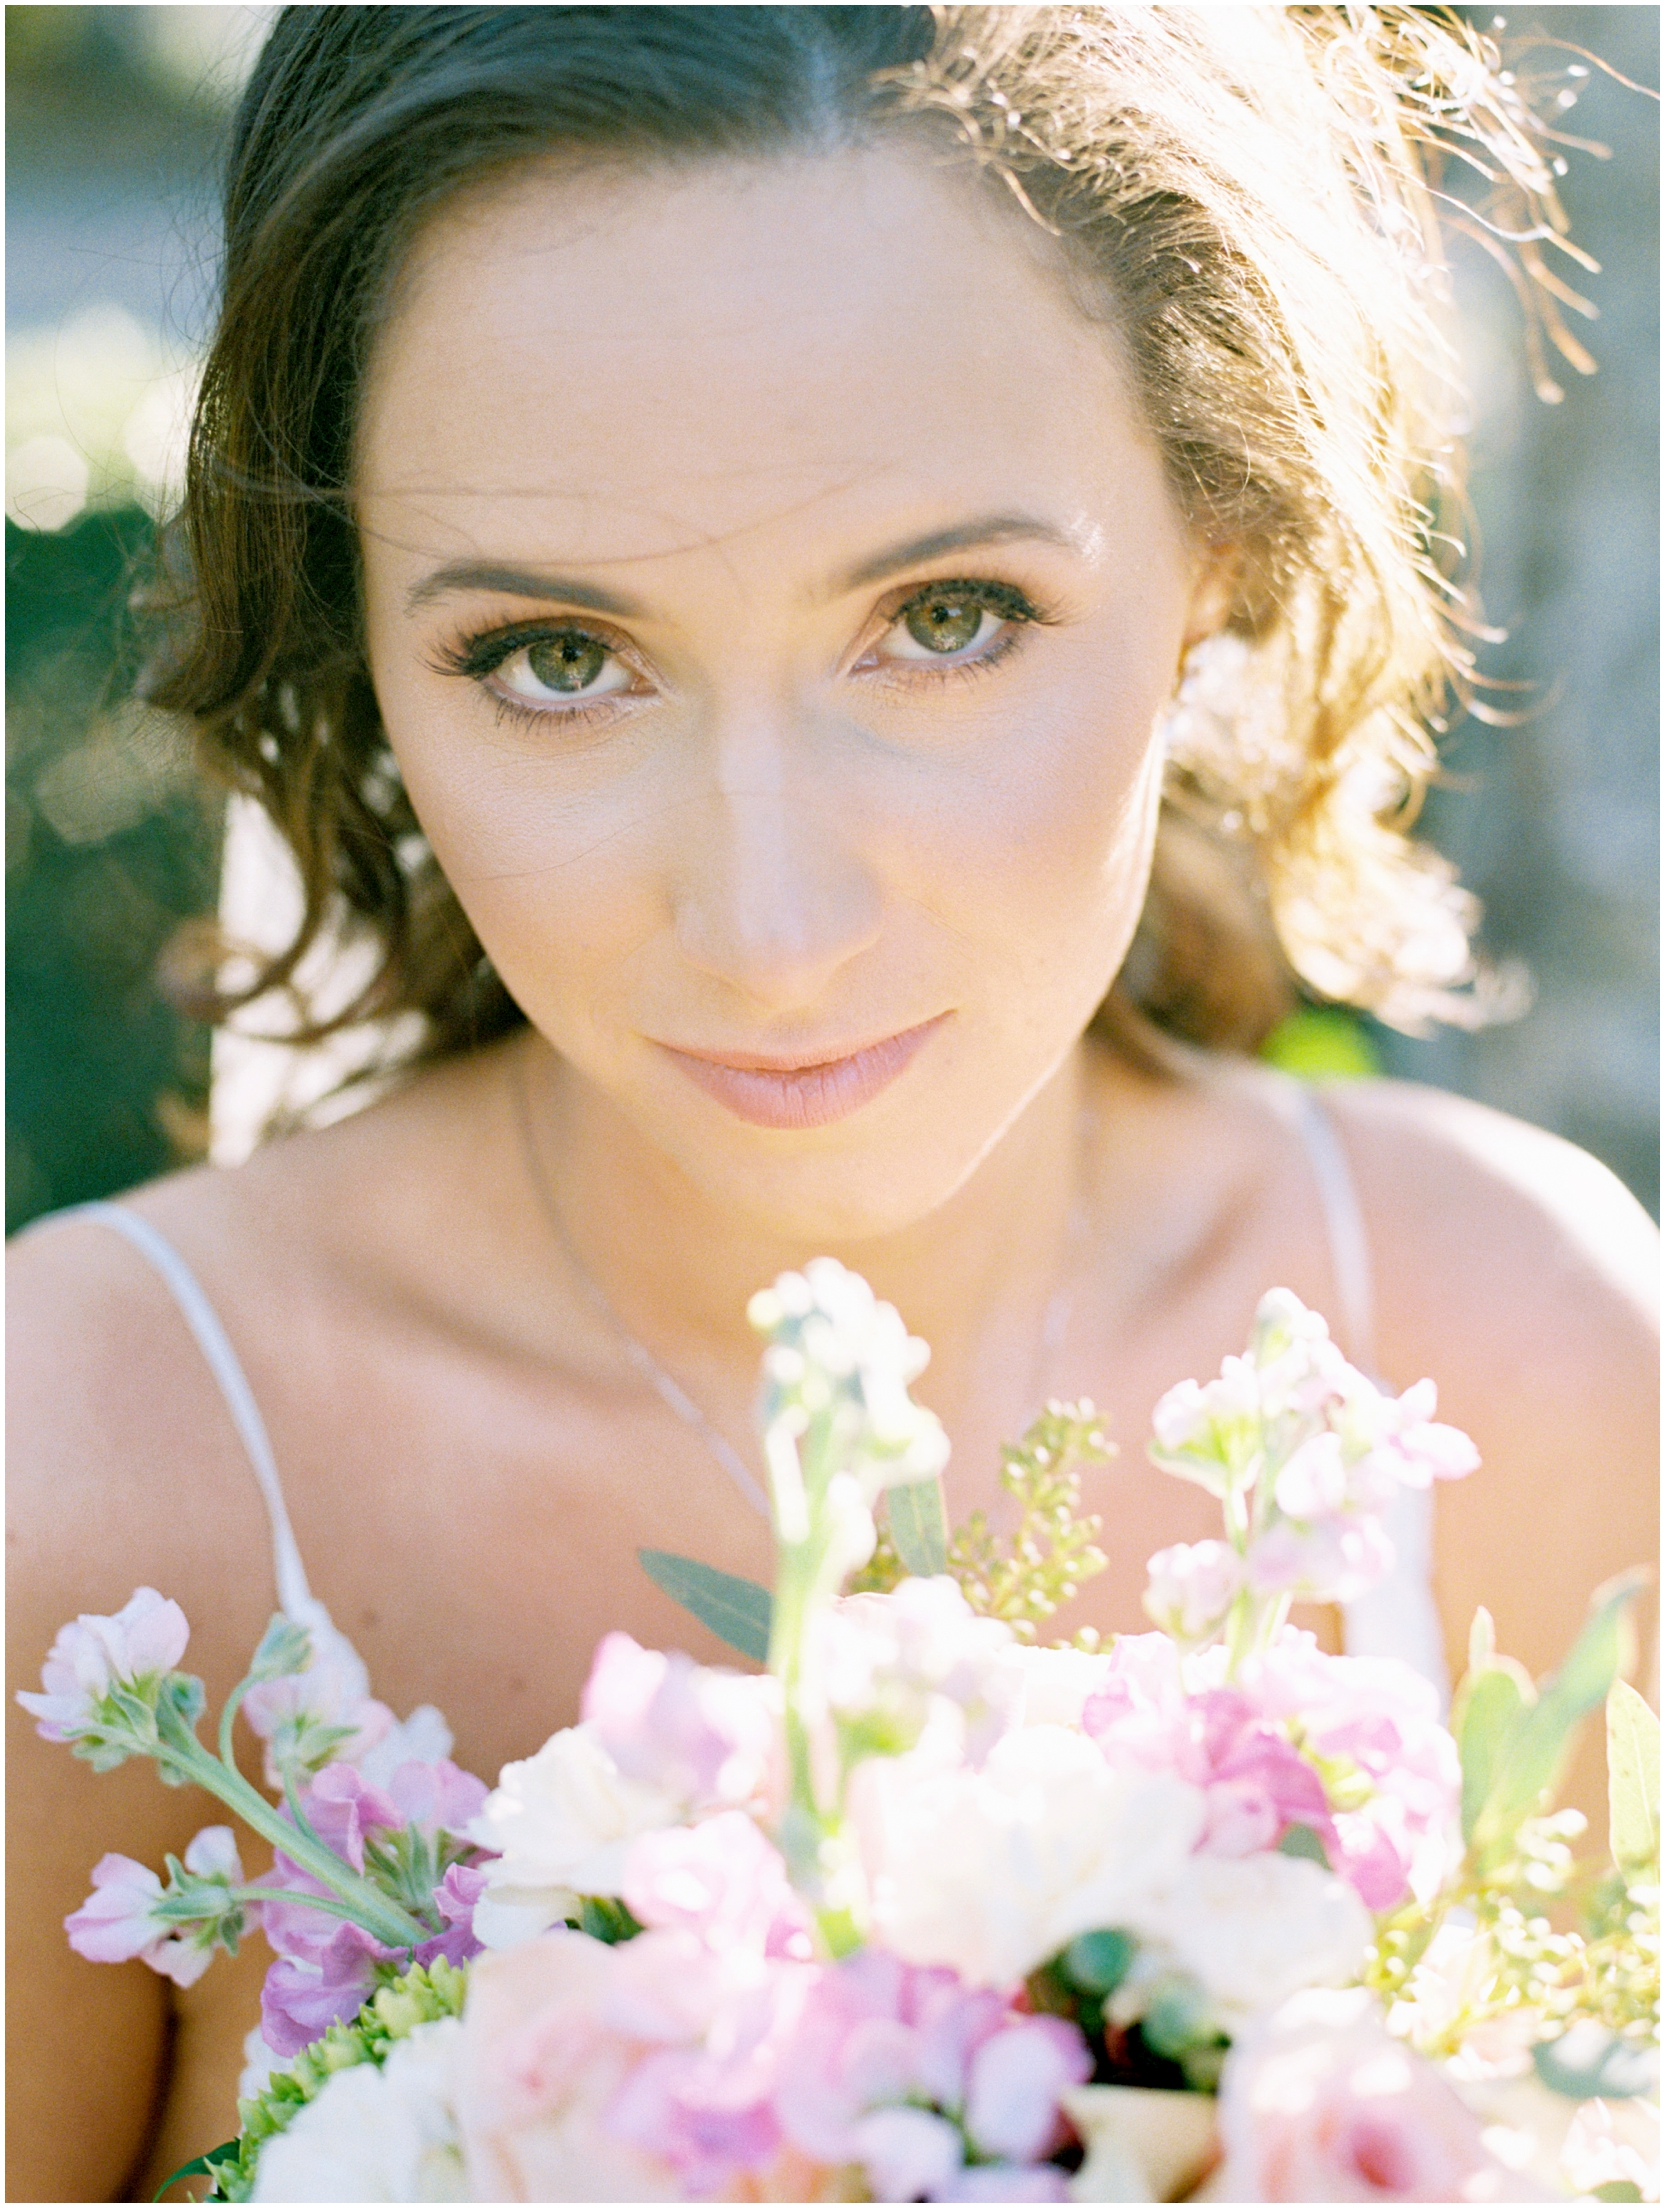 Lisa Silva Photography -Bridal Portrait Session in St. Augustine, Florida- Jacksonville and North East Florida Fine Art Film Photographer_0017.jpg